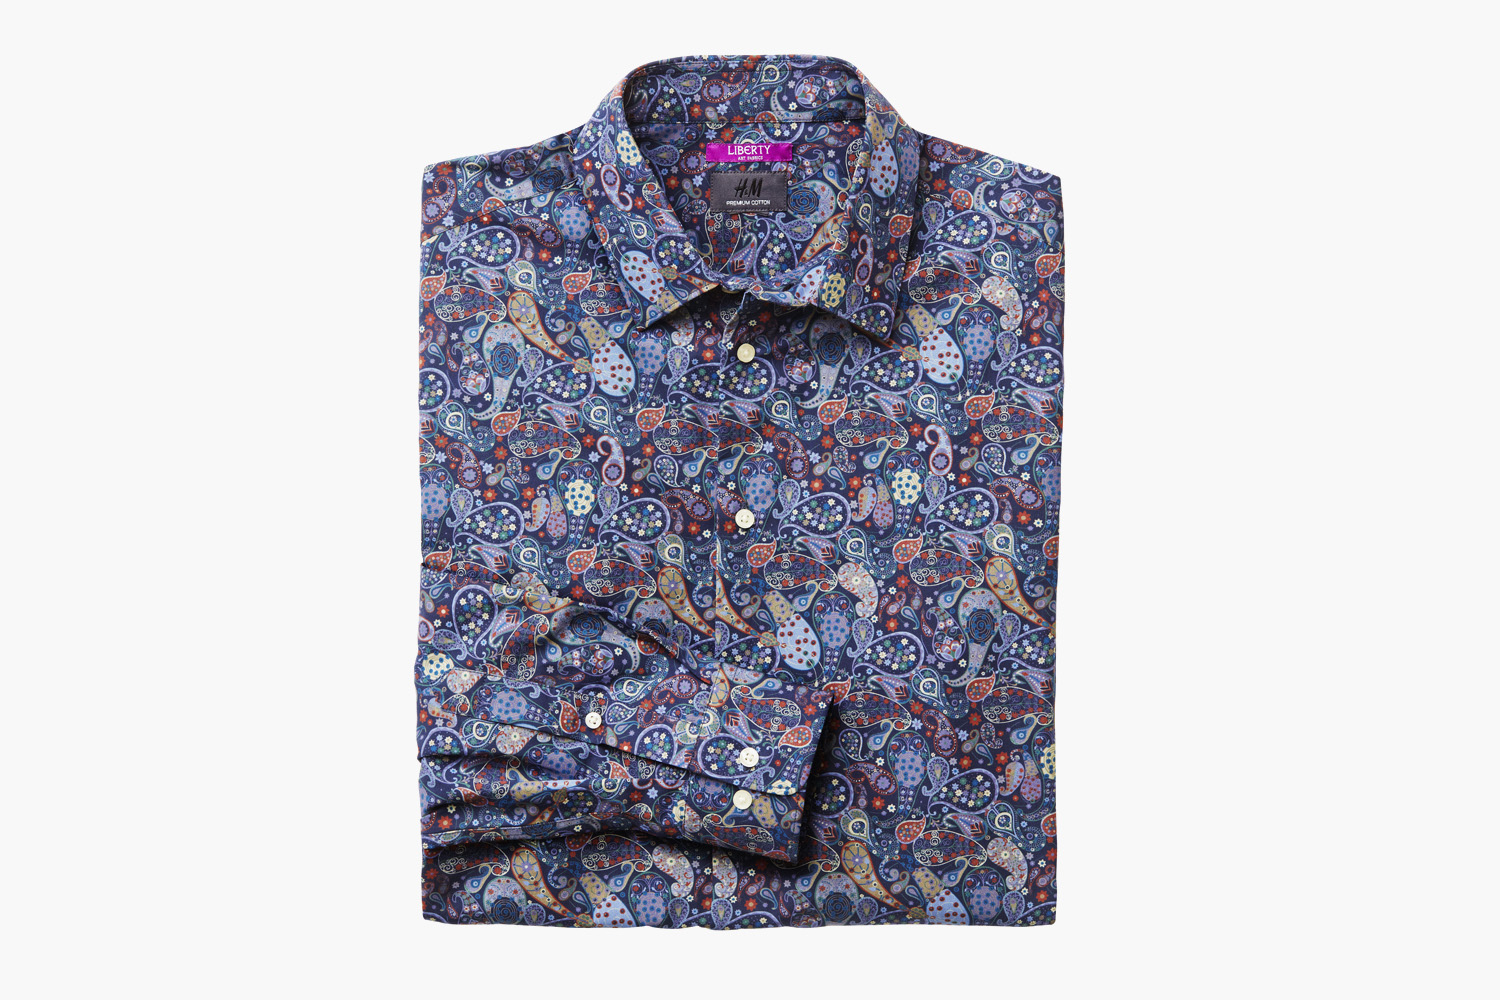 H&M and Liberty shirt